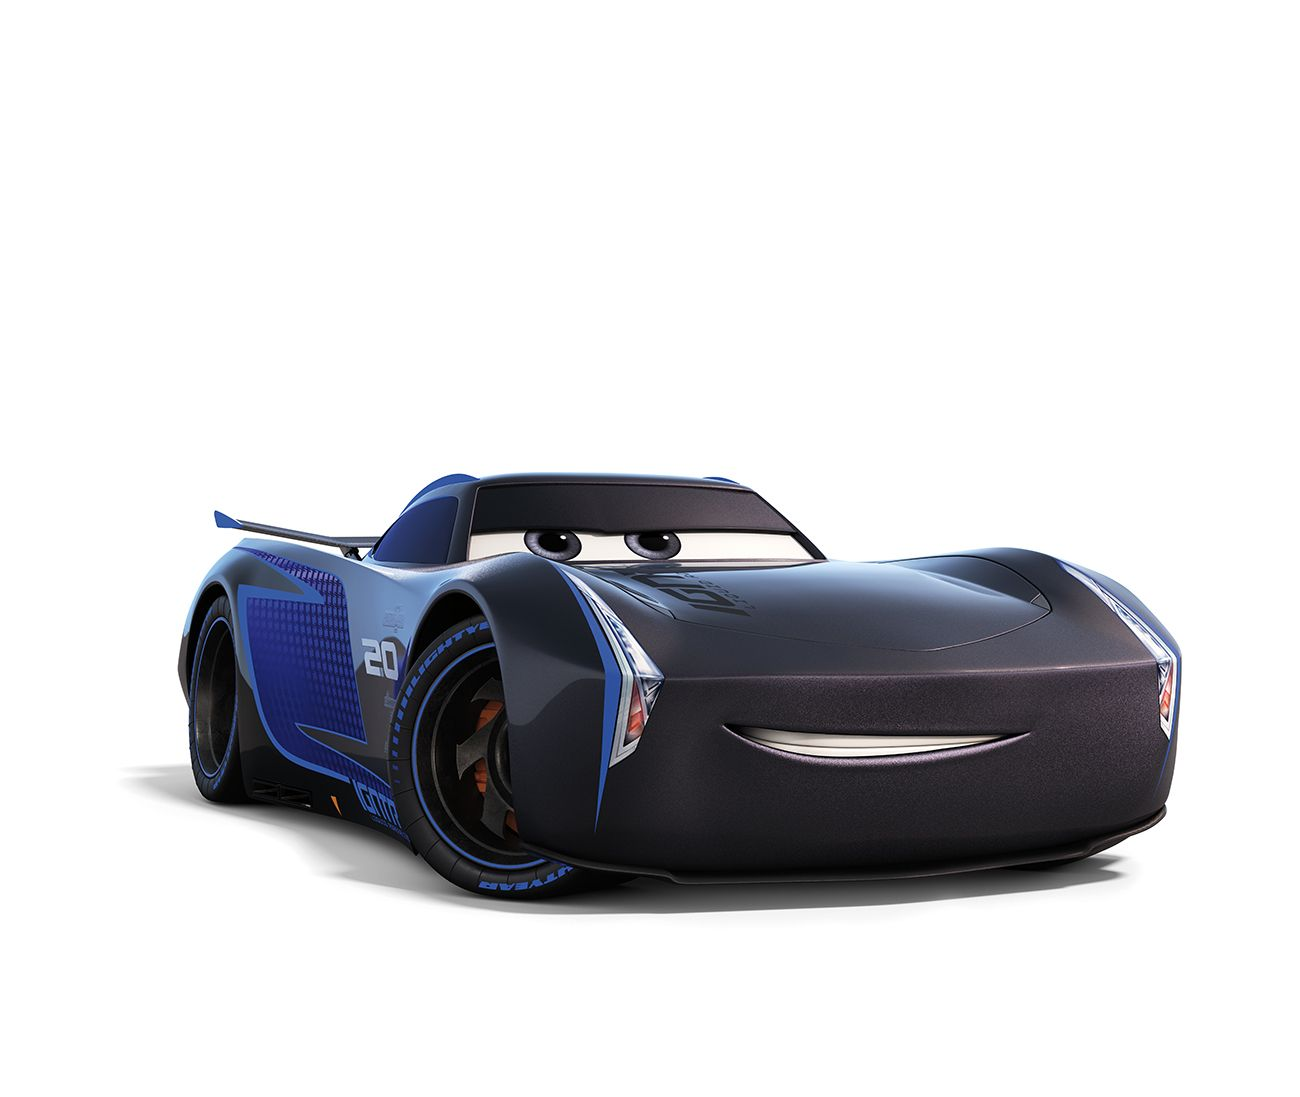 meet the cars 3 character lineup monde fantastique cesar et pliage. Black Bedroom Furniture Sets. Home Design Ideas